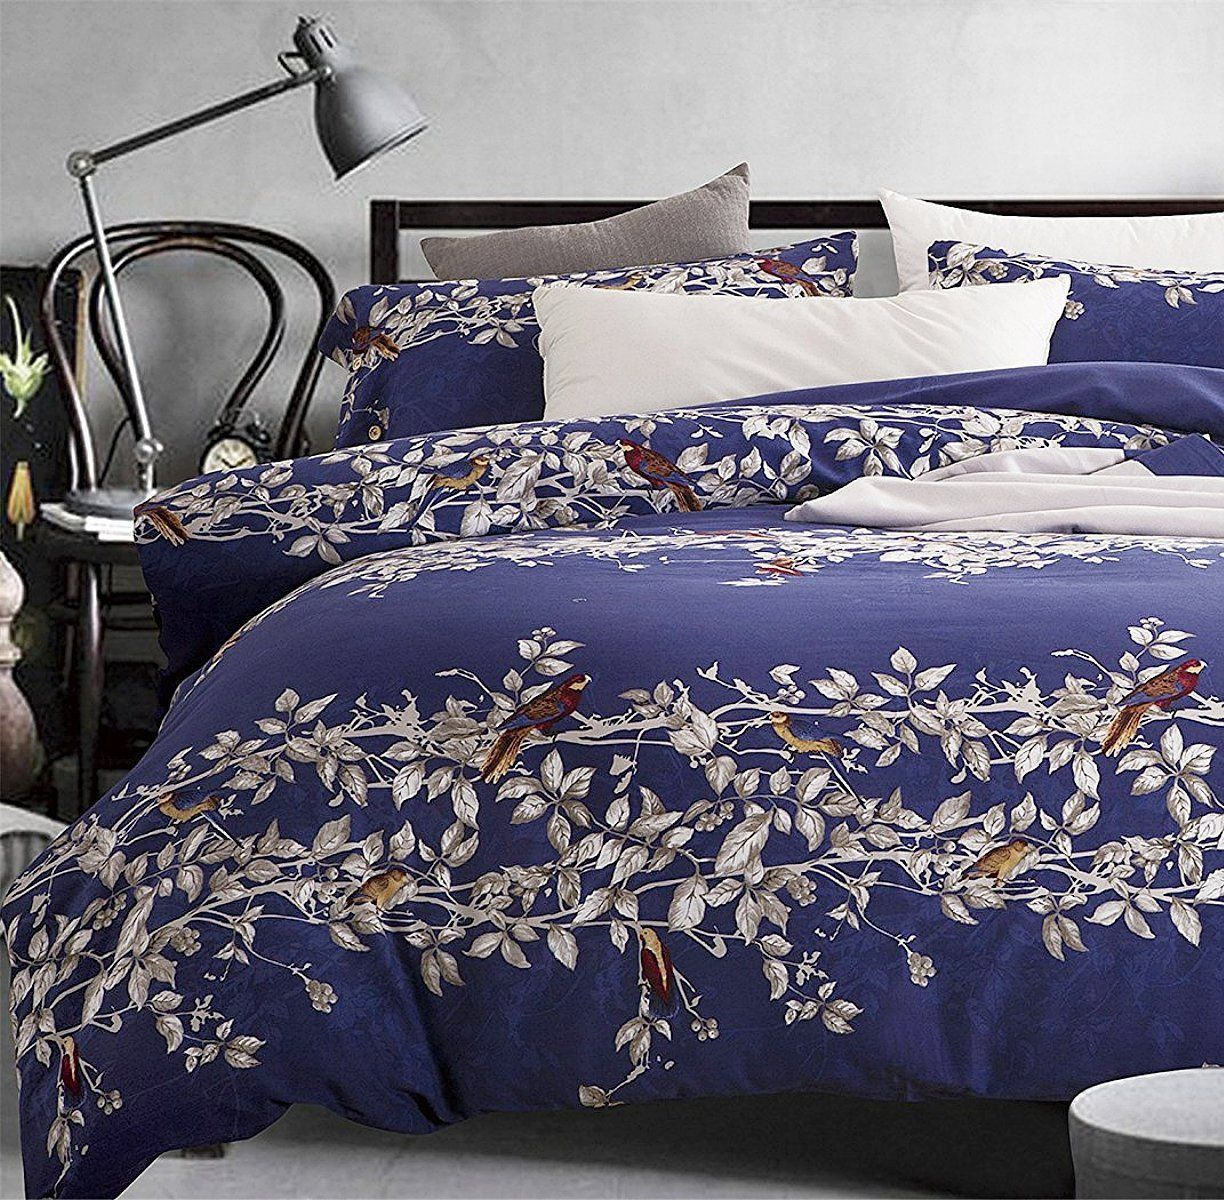 White and Blue Floral Bedding and Comforter Sets Eikei